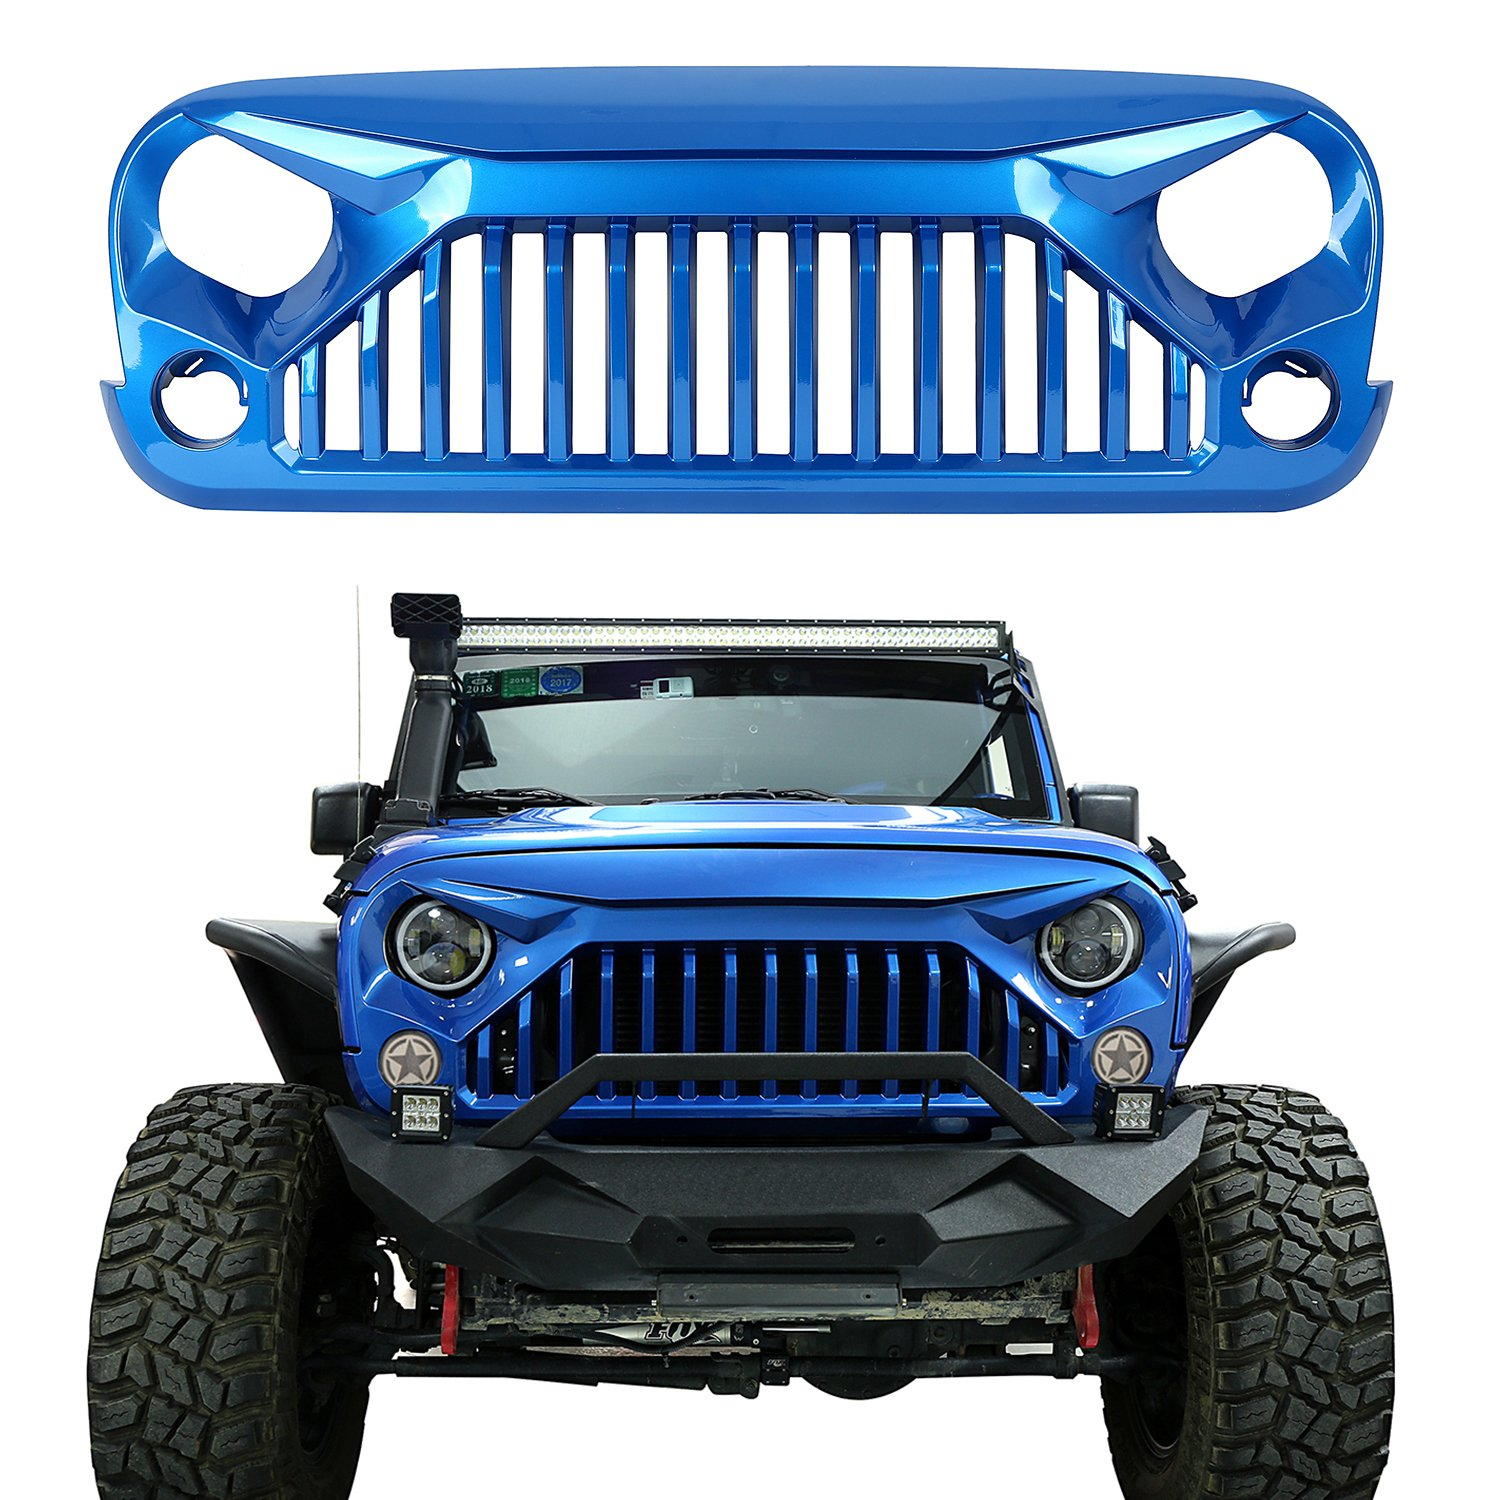 u-Box Vader Gladiator Front Grille Painted Hydro Blue for 2014-2016 Jeep Wrangler JK & Wrangler Unlimited by u-Box